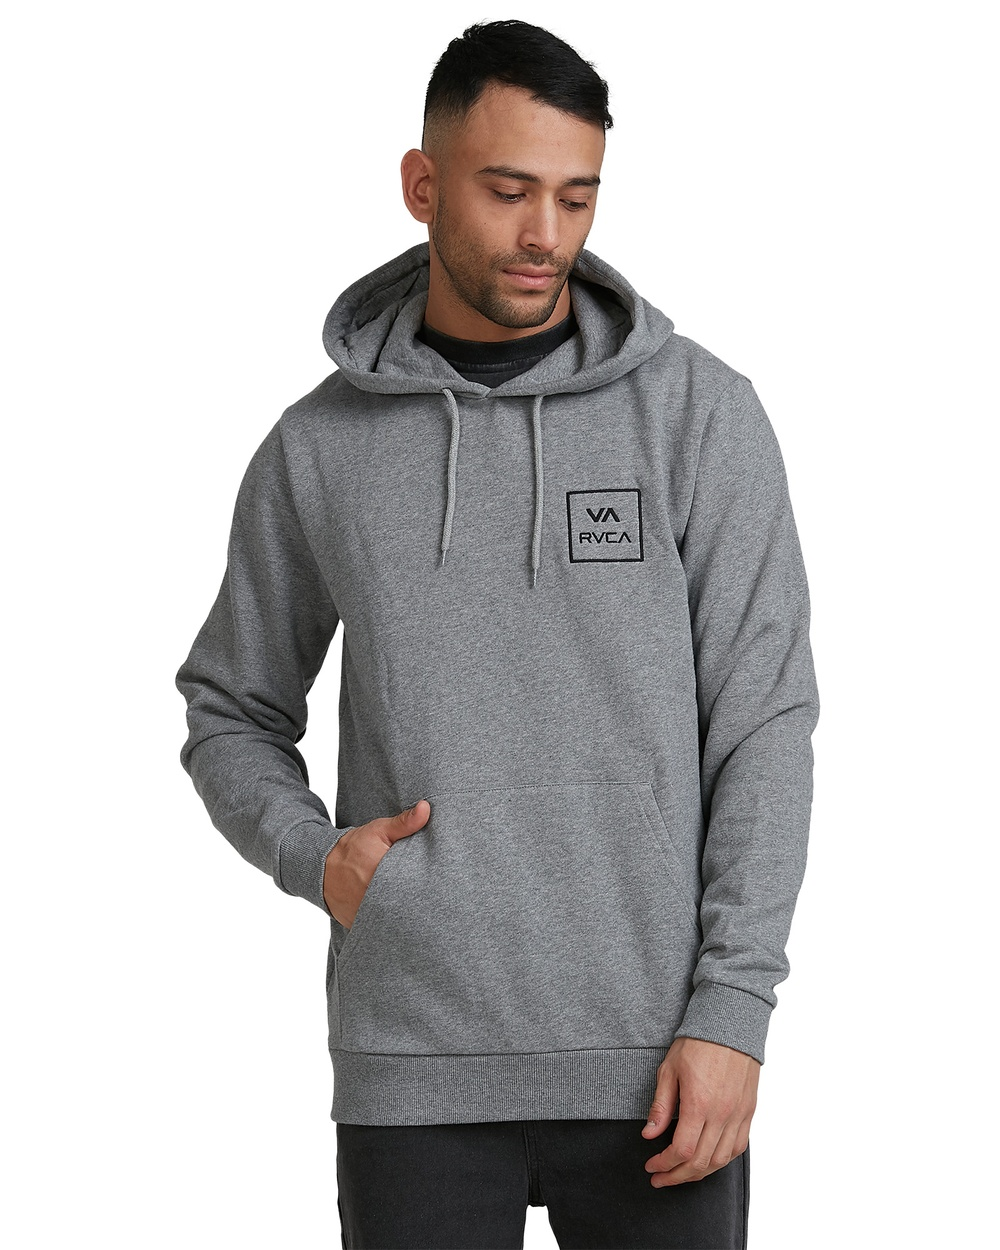 RVCA Rvca All The Ways Pullover Jumpers & Cardigans GREY MARLE Australia